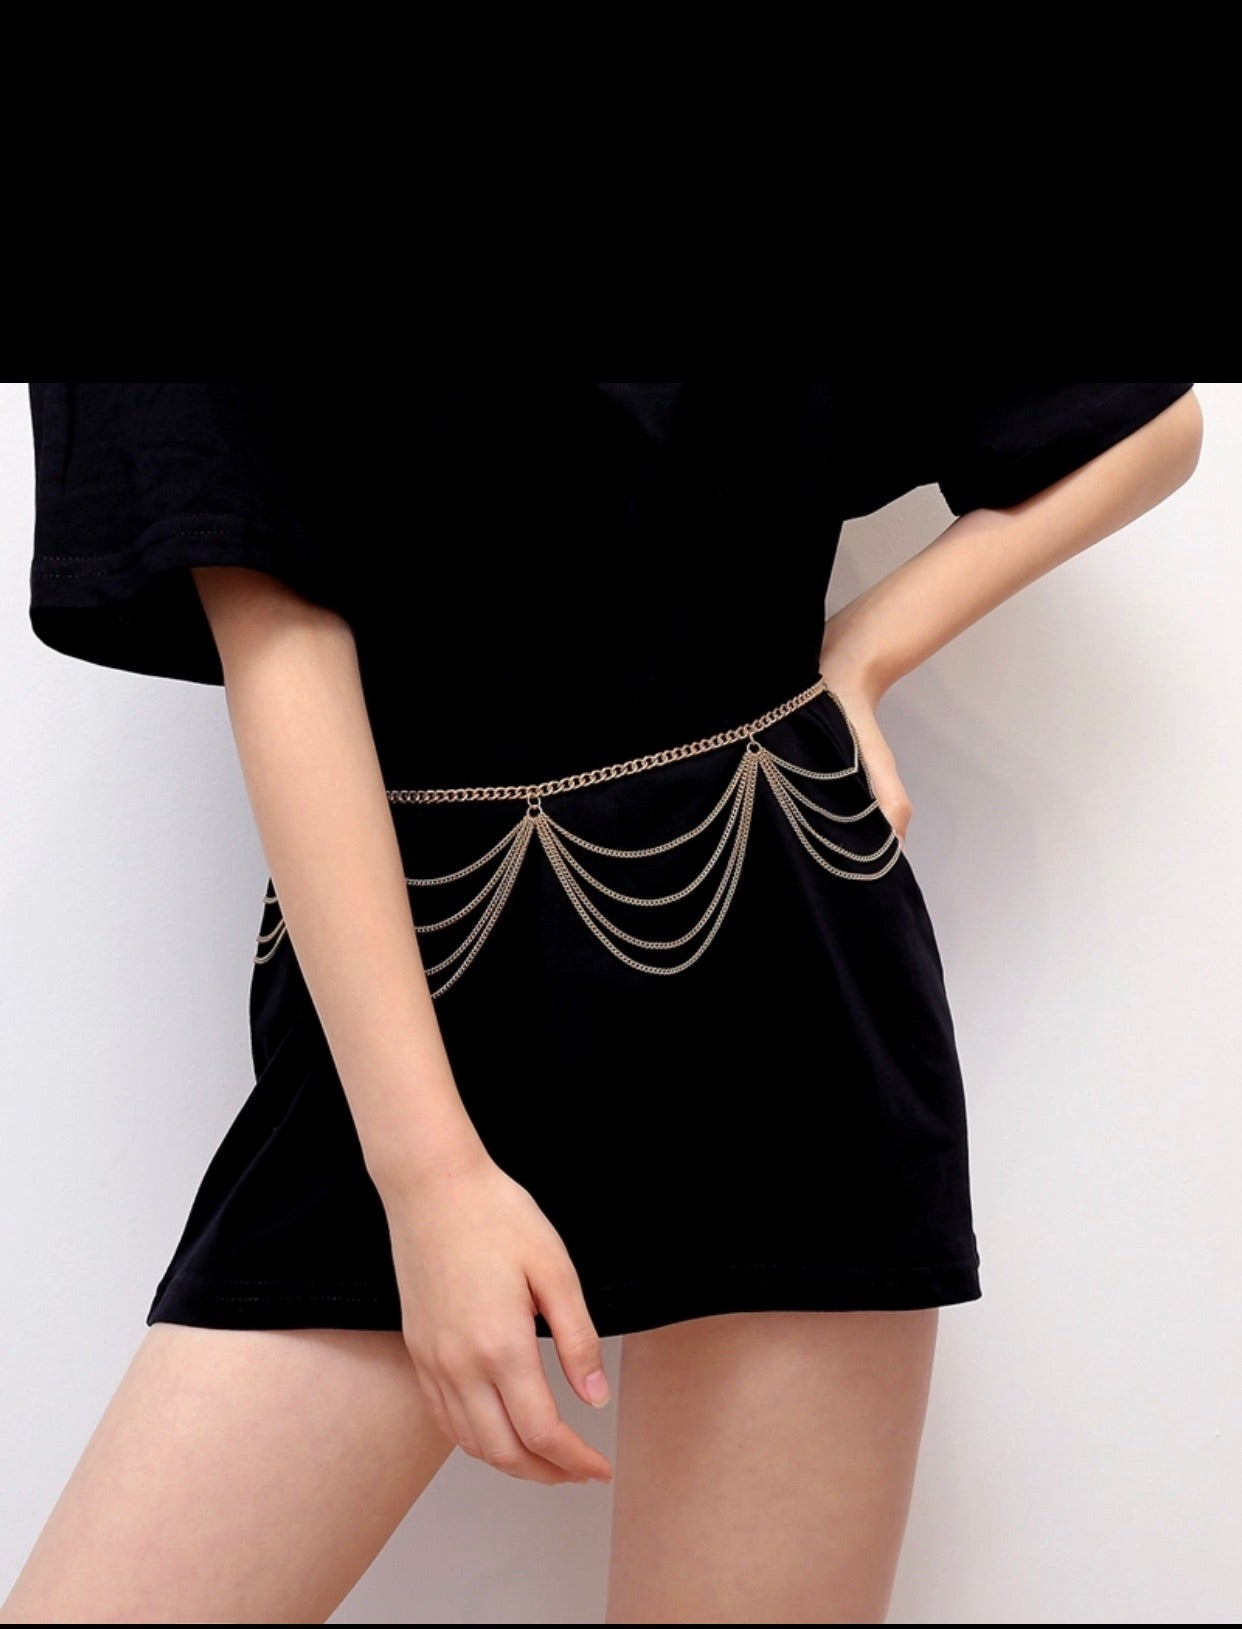 Chandelier Chain Belt